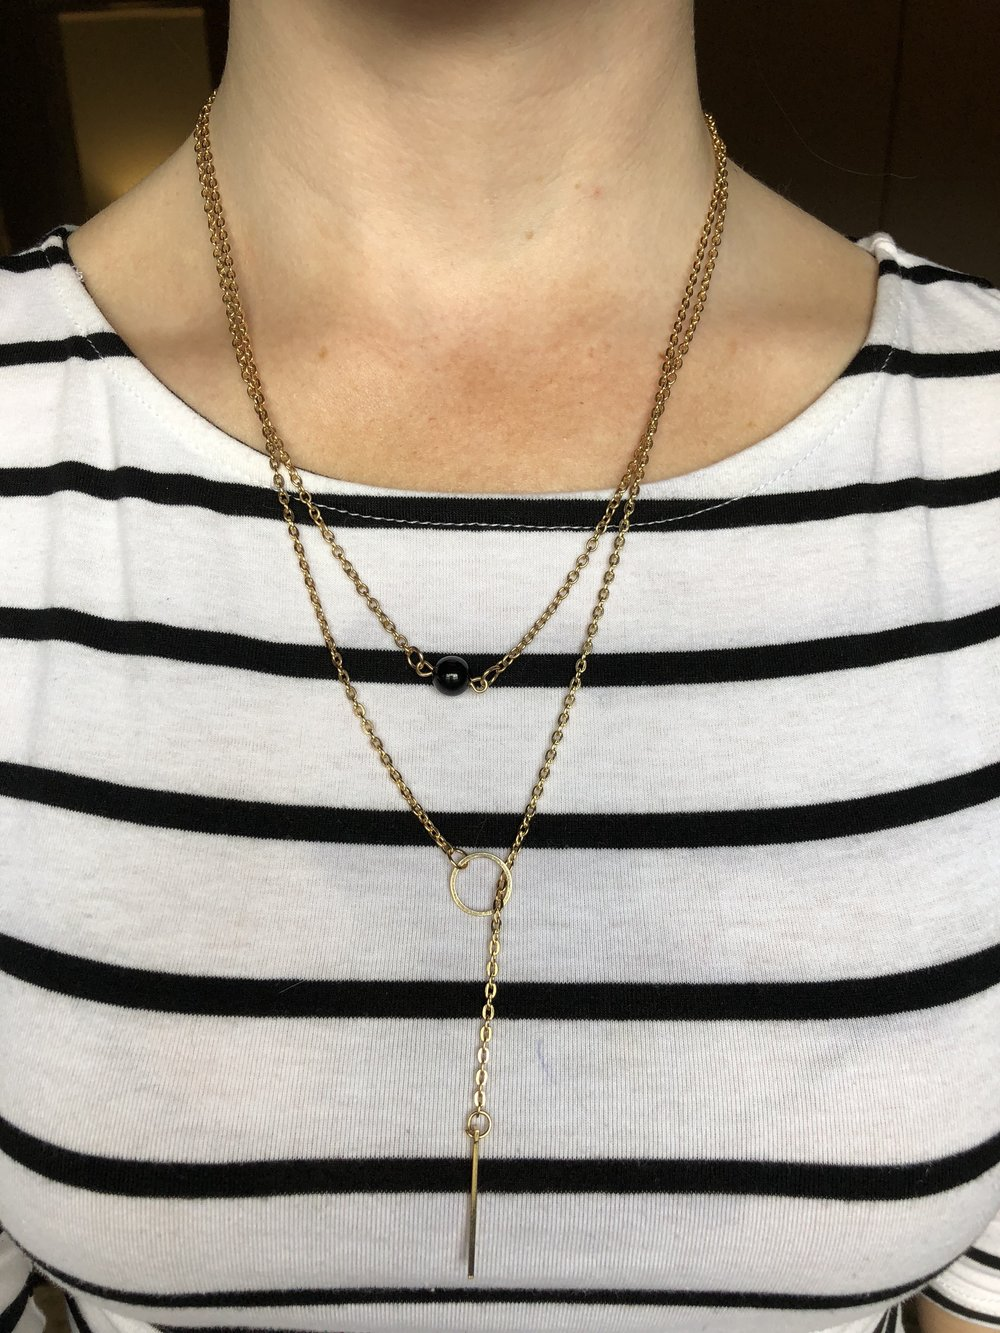 The lariat paired with the black onyx necklace over a simple striped tee.